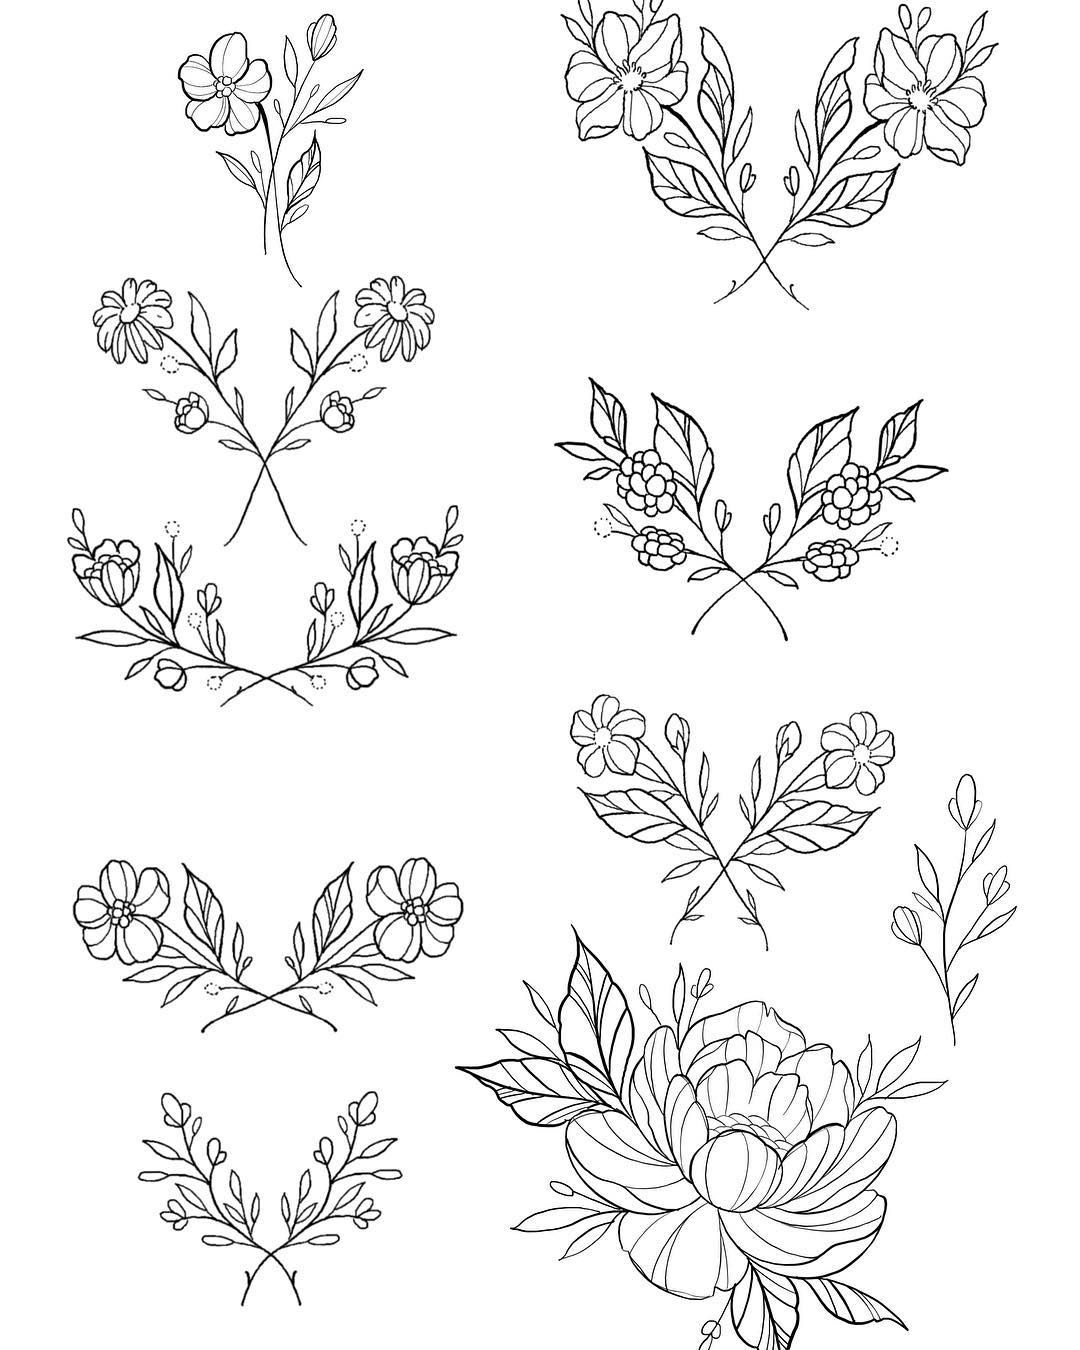 Flash Day Tomorrow Doors Open 12 Some Dainty Lil Flowers For Those Of You Wanting Something Sweet Small Tag Tattoos Body Art Tattoos Floral Tattoo Design